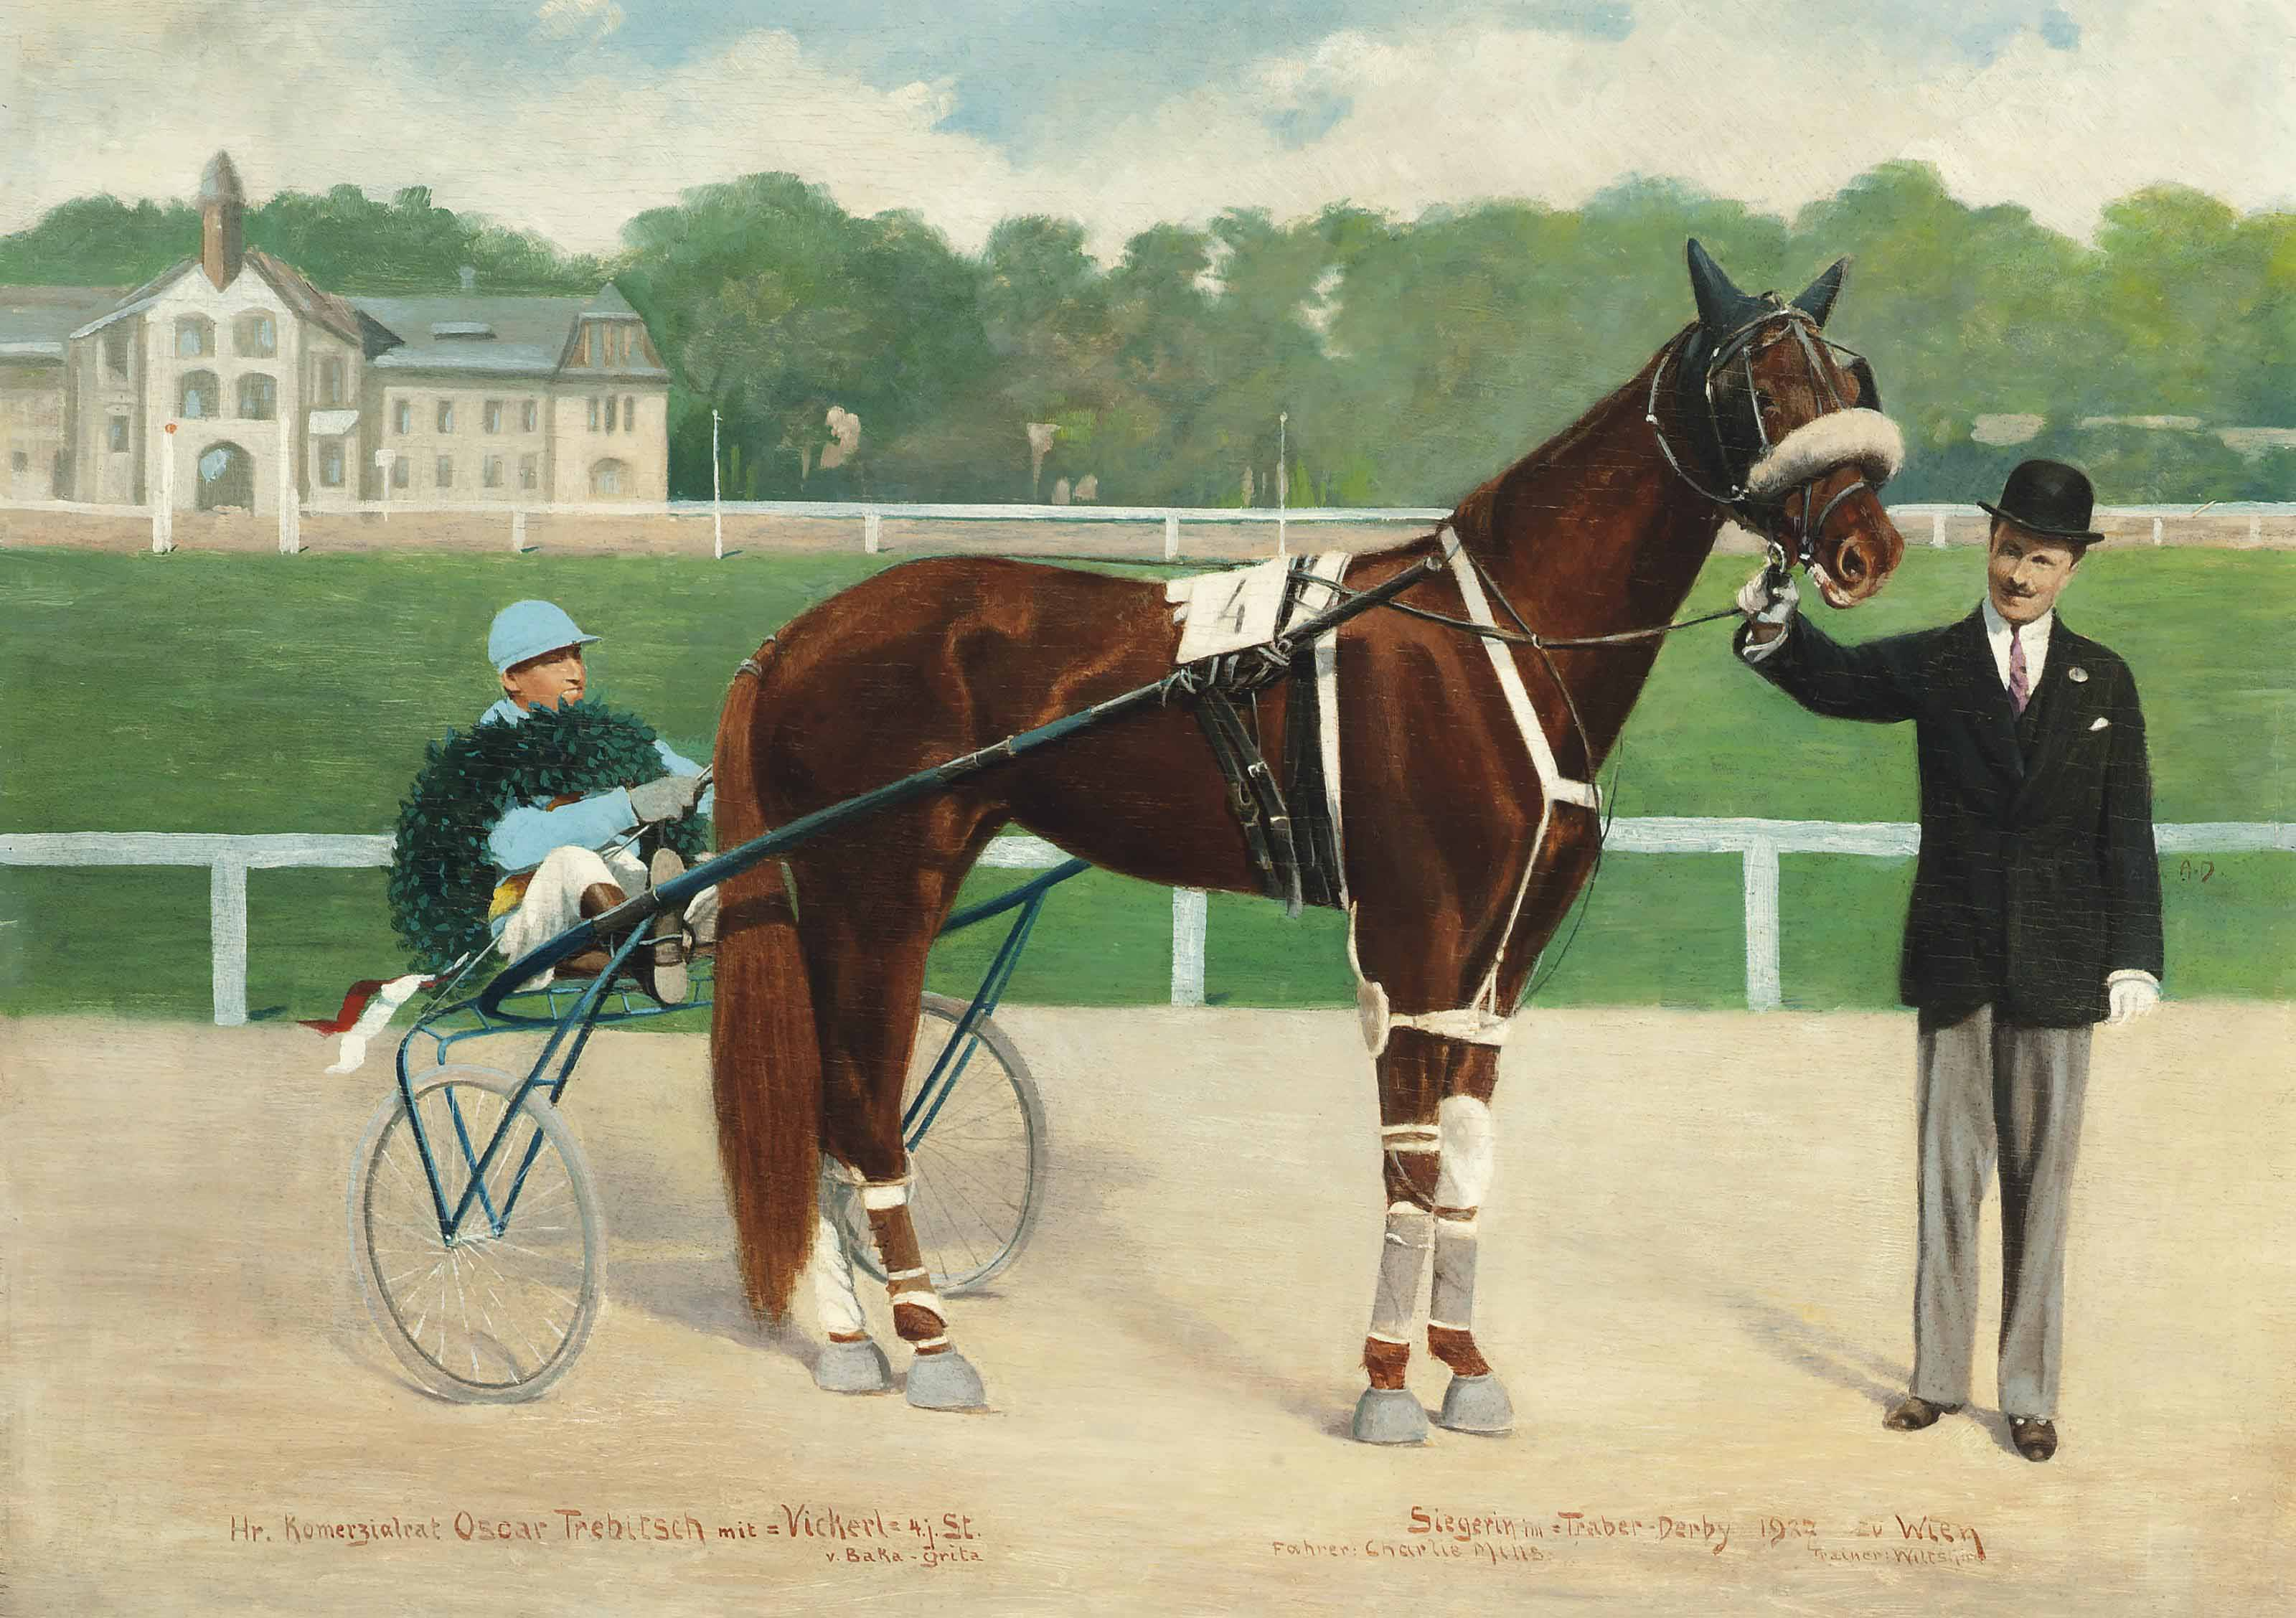 Vickerl ridden by Charlie Mills, winner of the 1927 Trotting Derby